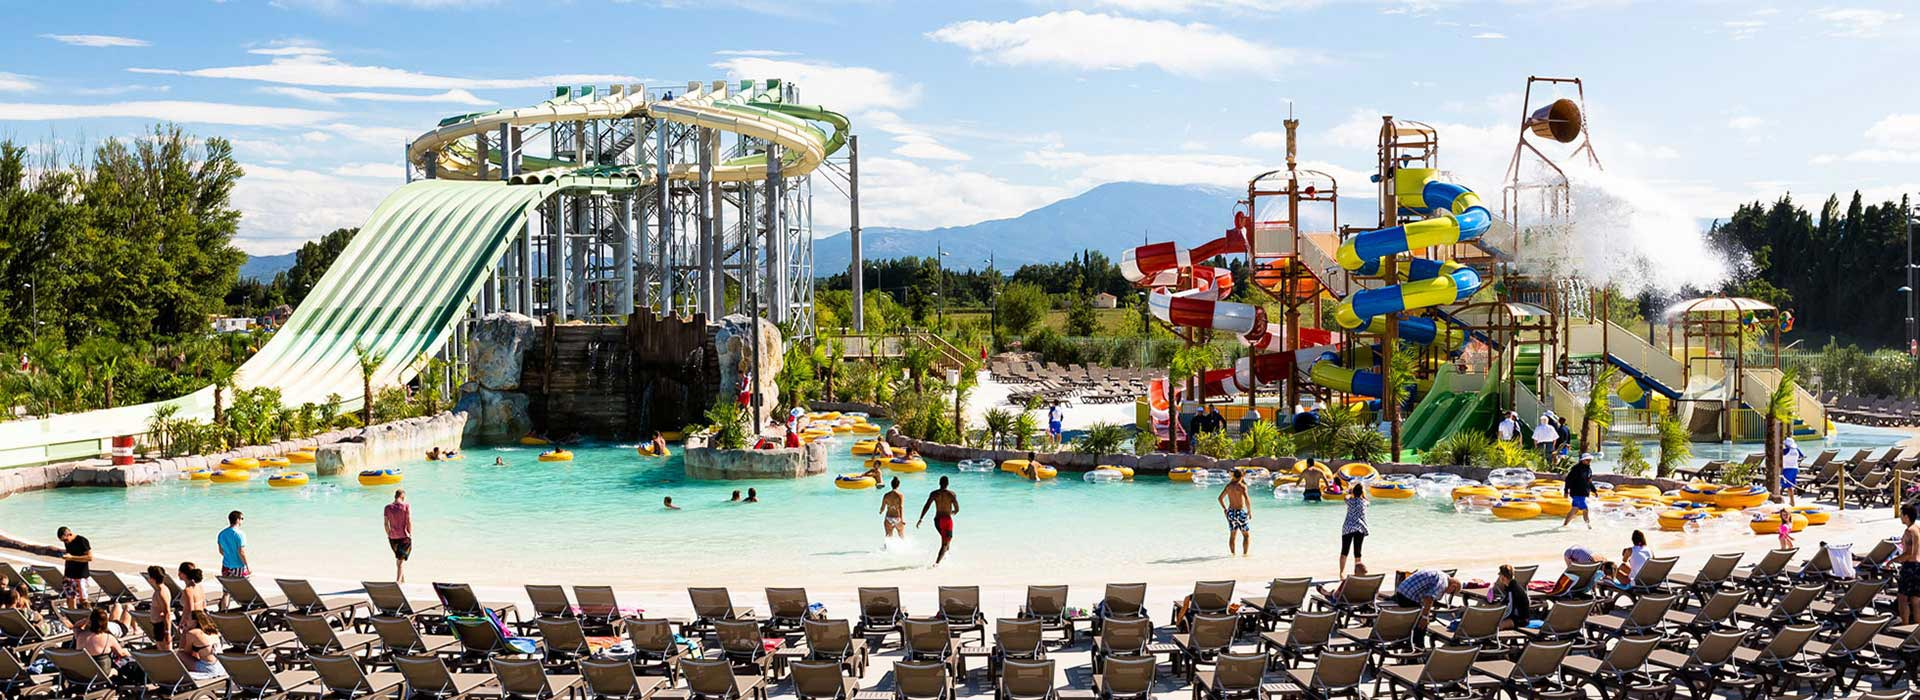 Camping Les Verguettes Splashworld